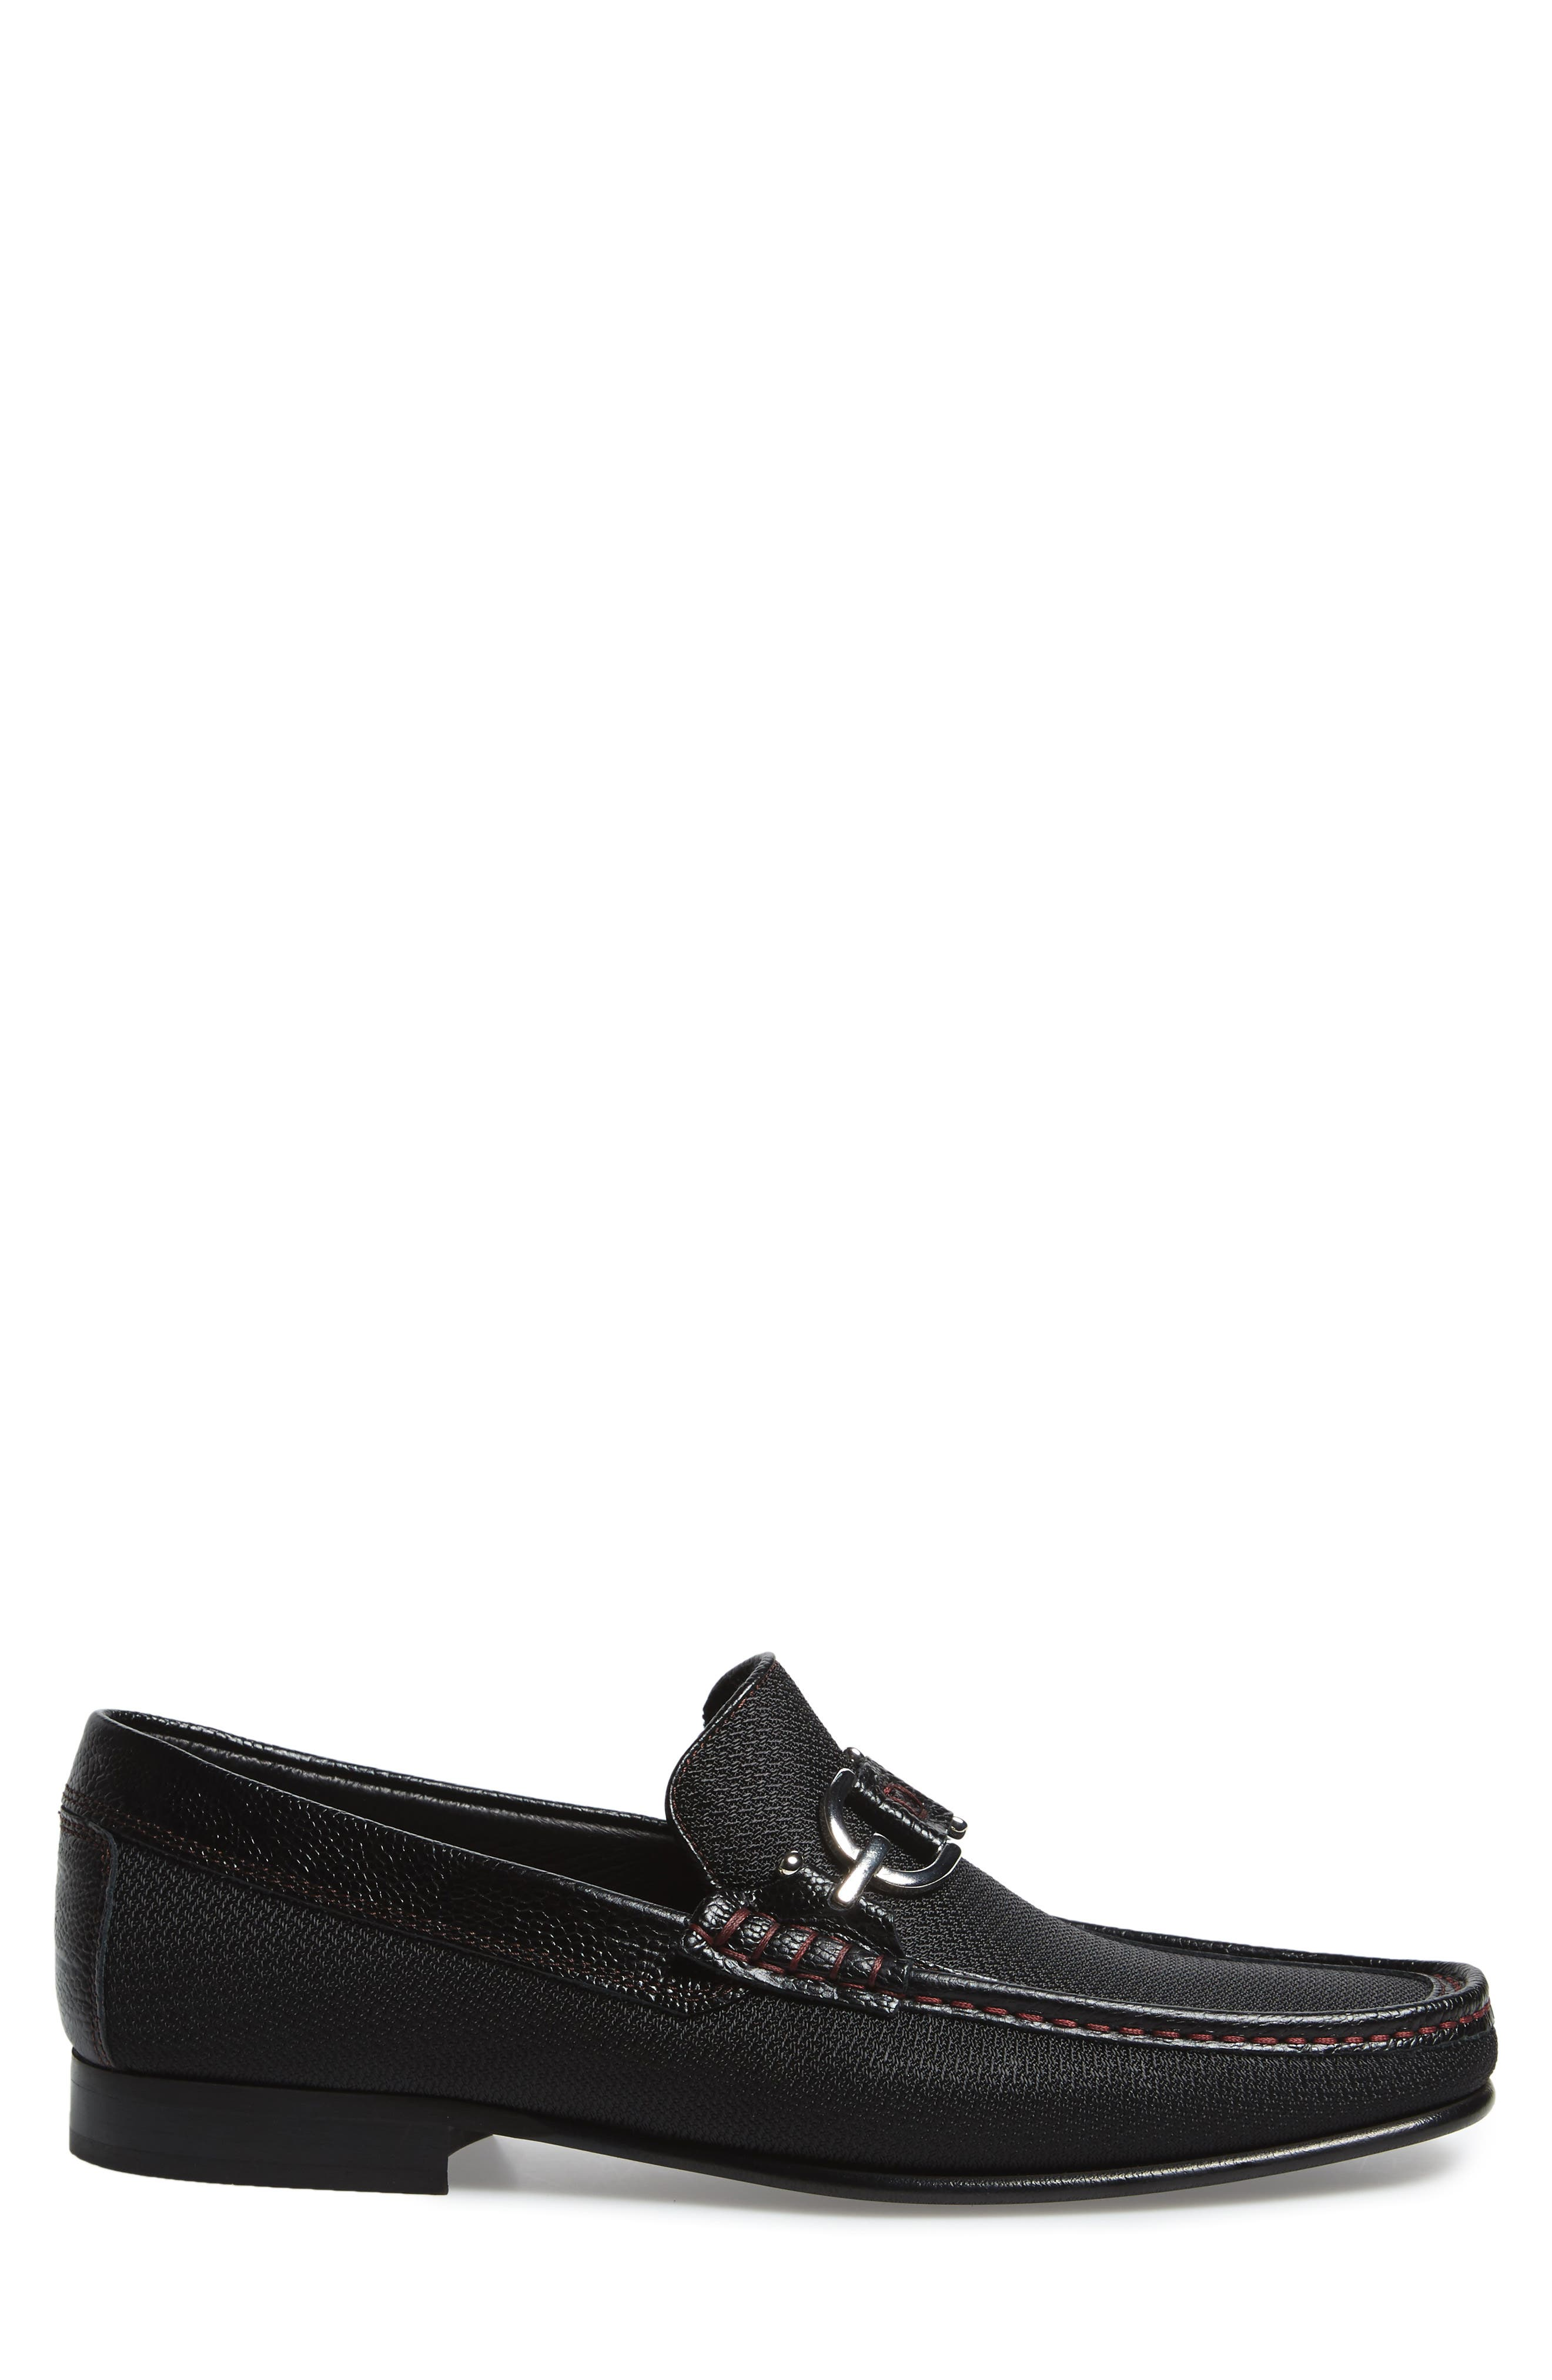 Dacio Moc Toe Loafer,                             Alternate thumbnail 3, color,                             001